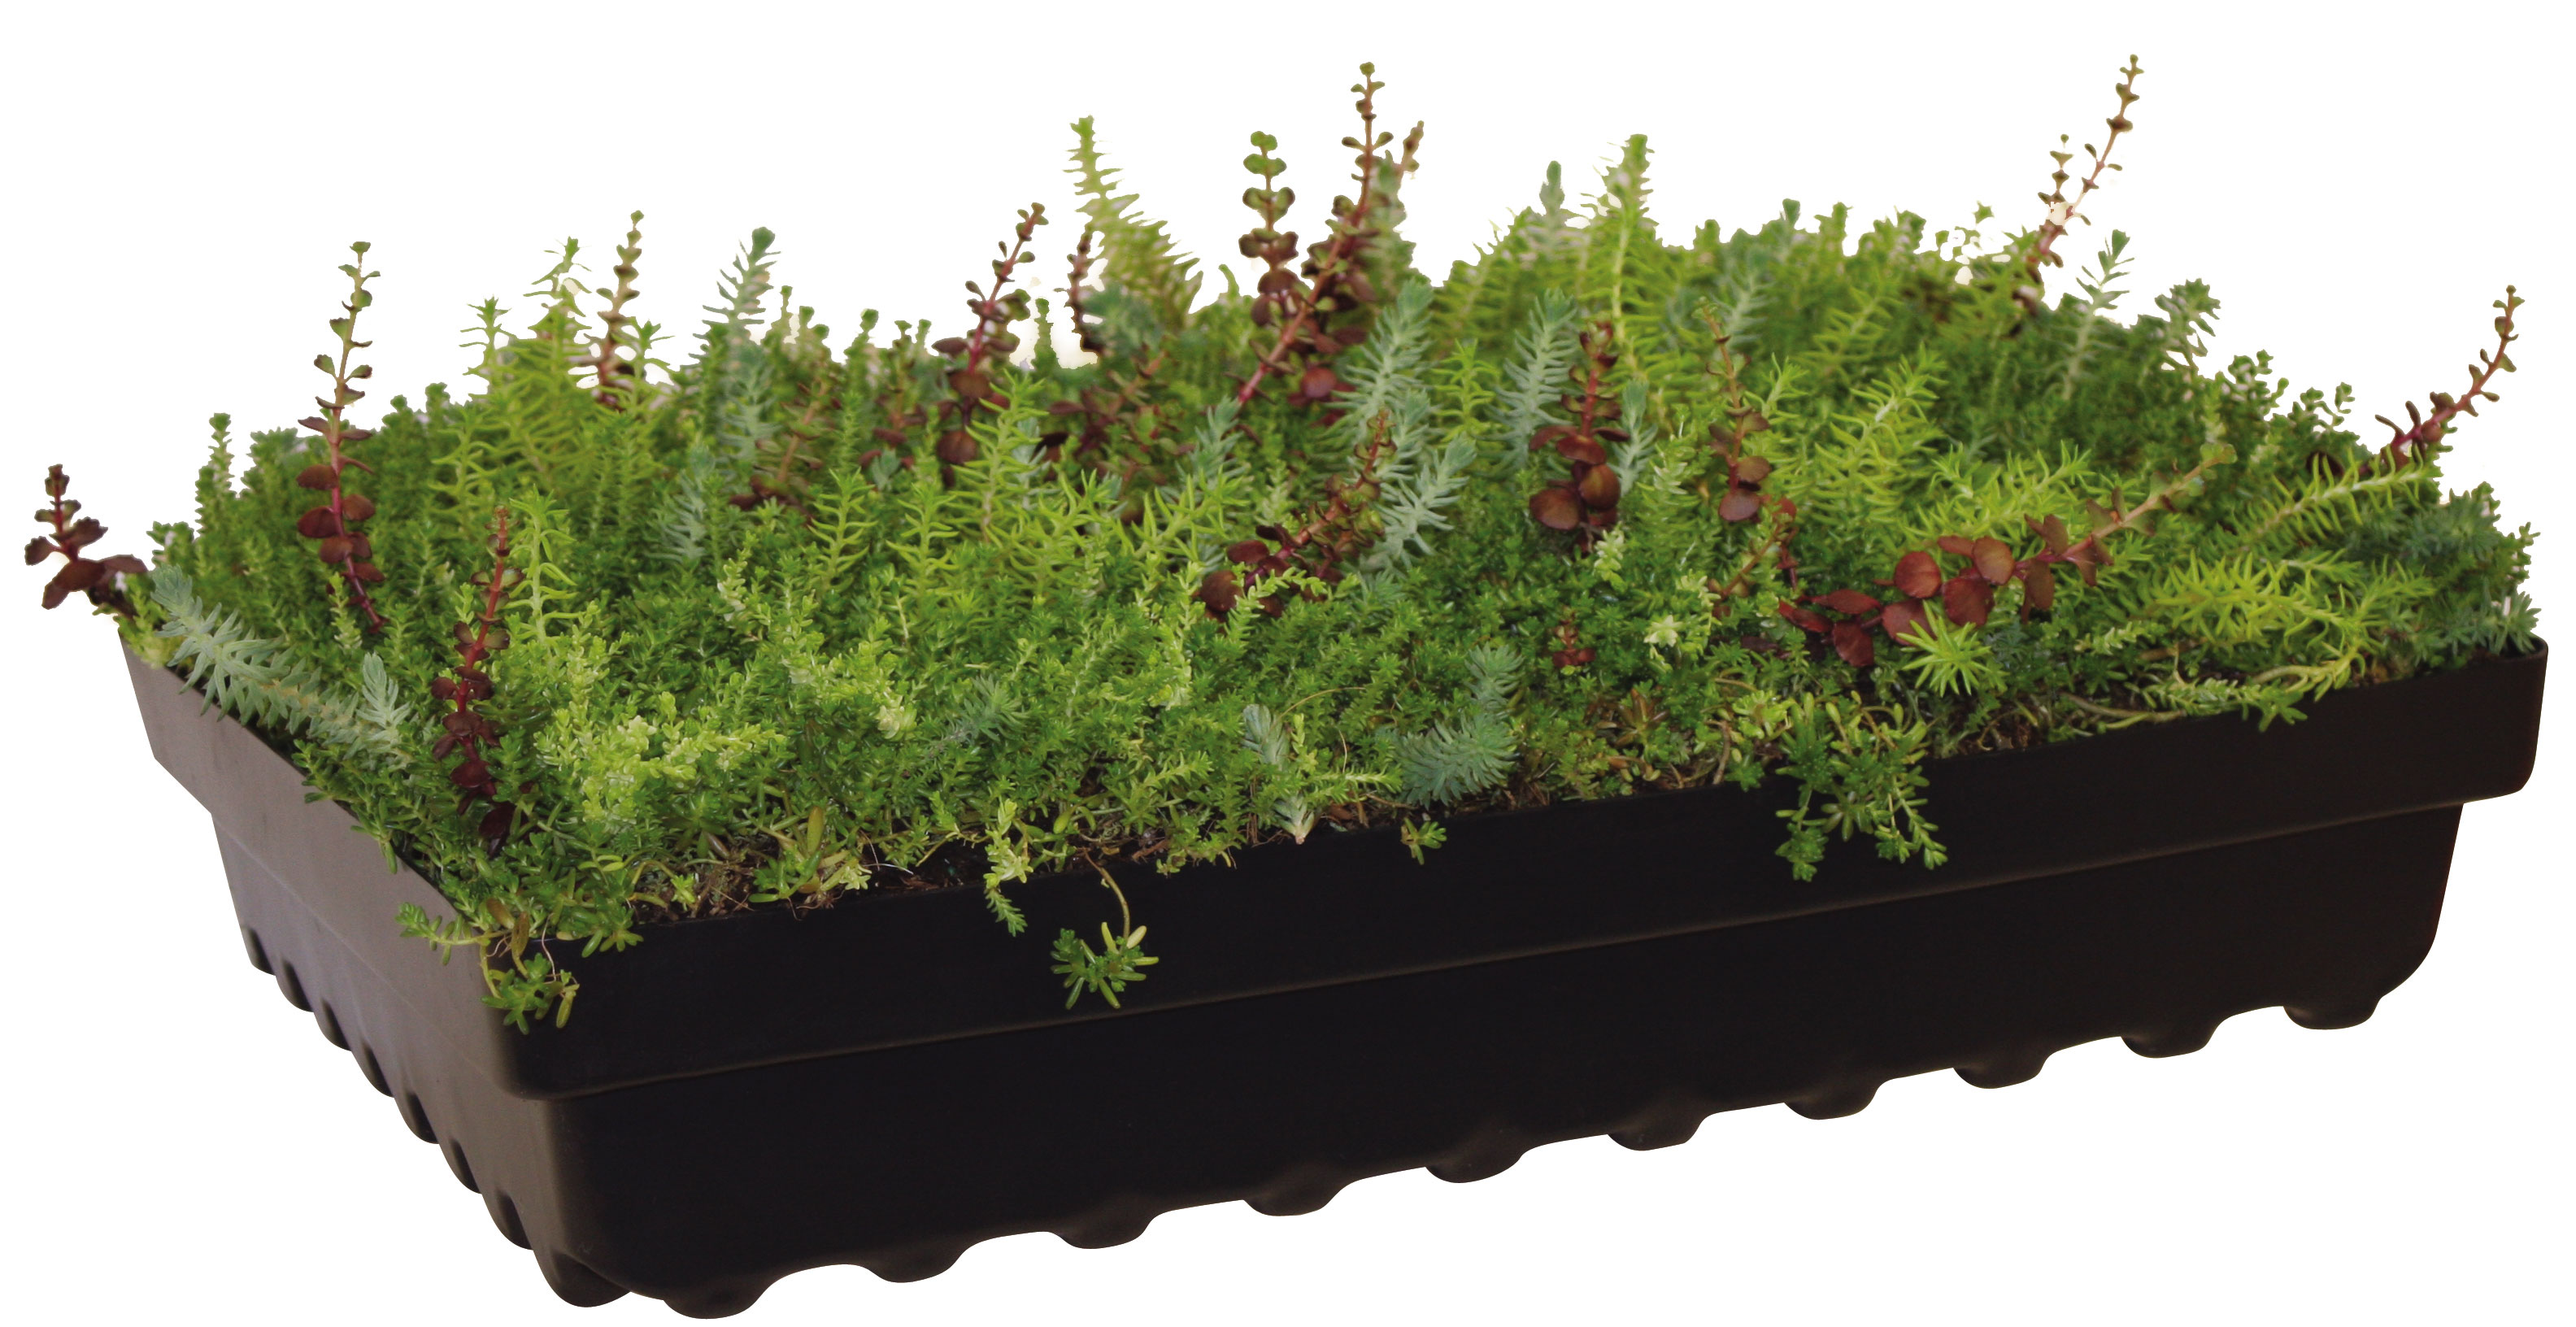 Hydrotech Announces Two Additions To Garden Roof Assembly